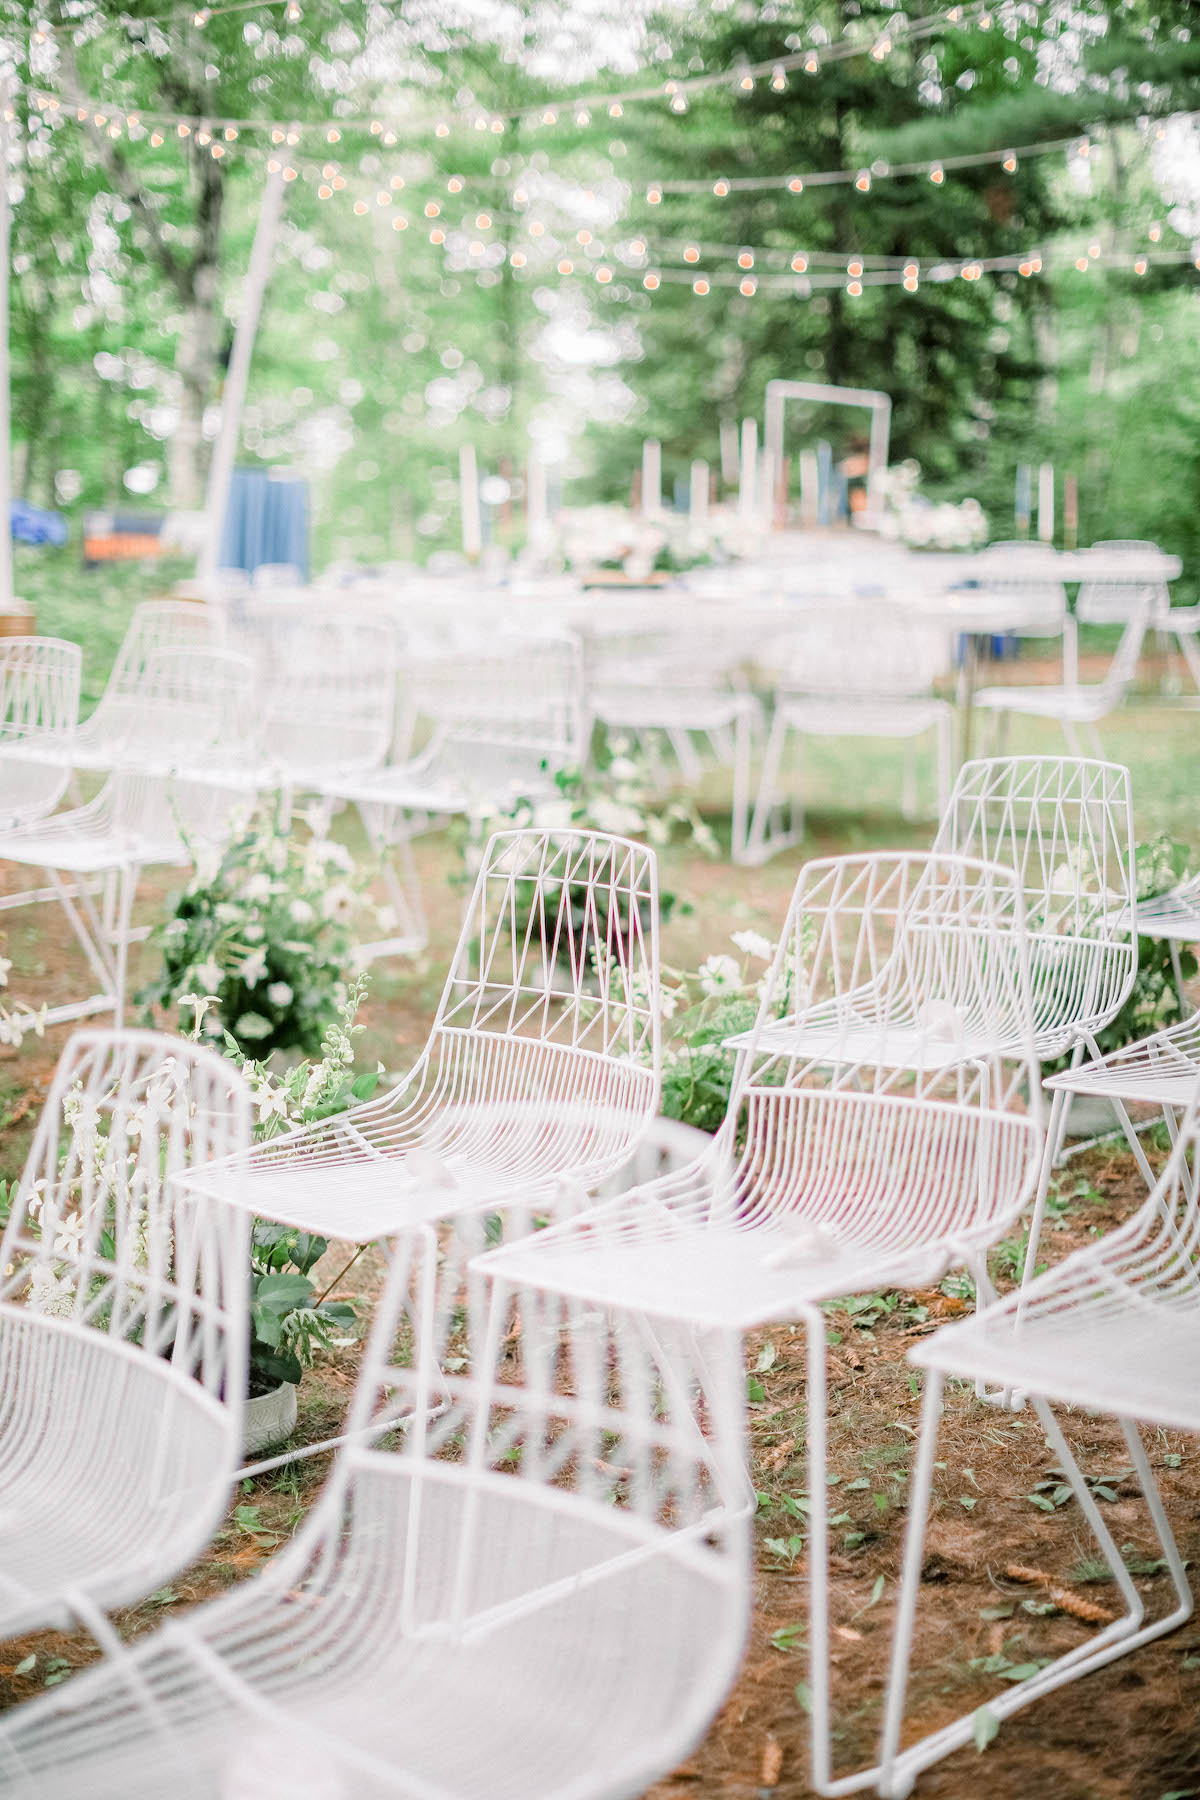 Modern white wedding chairs for outdoor wedding ceremony